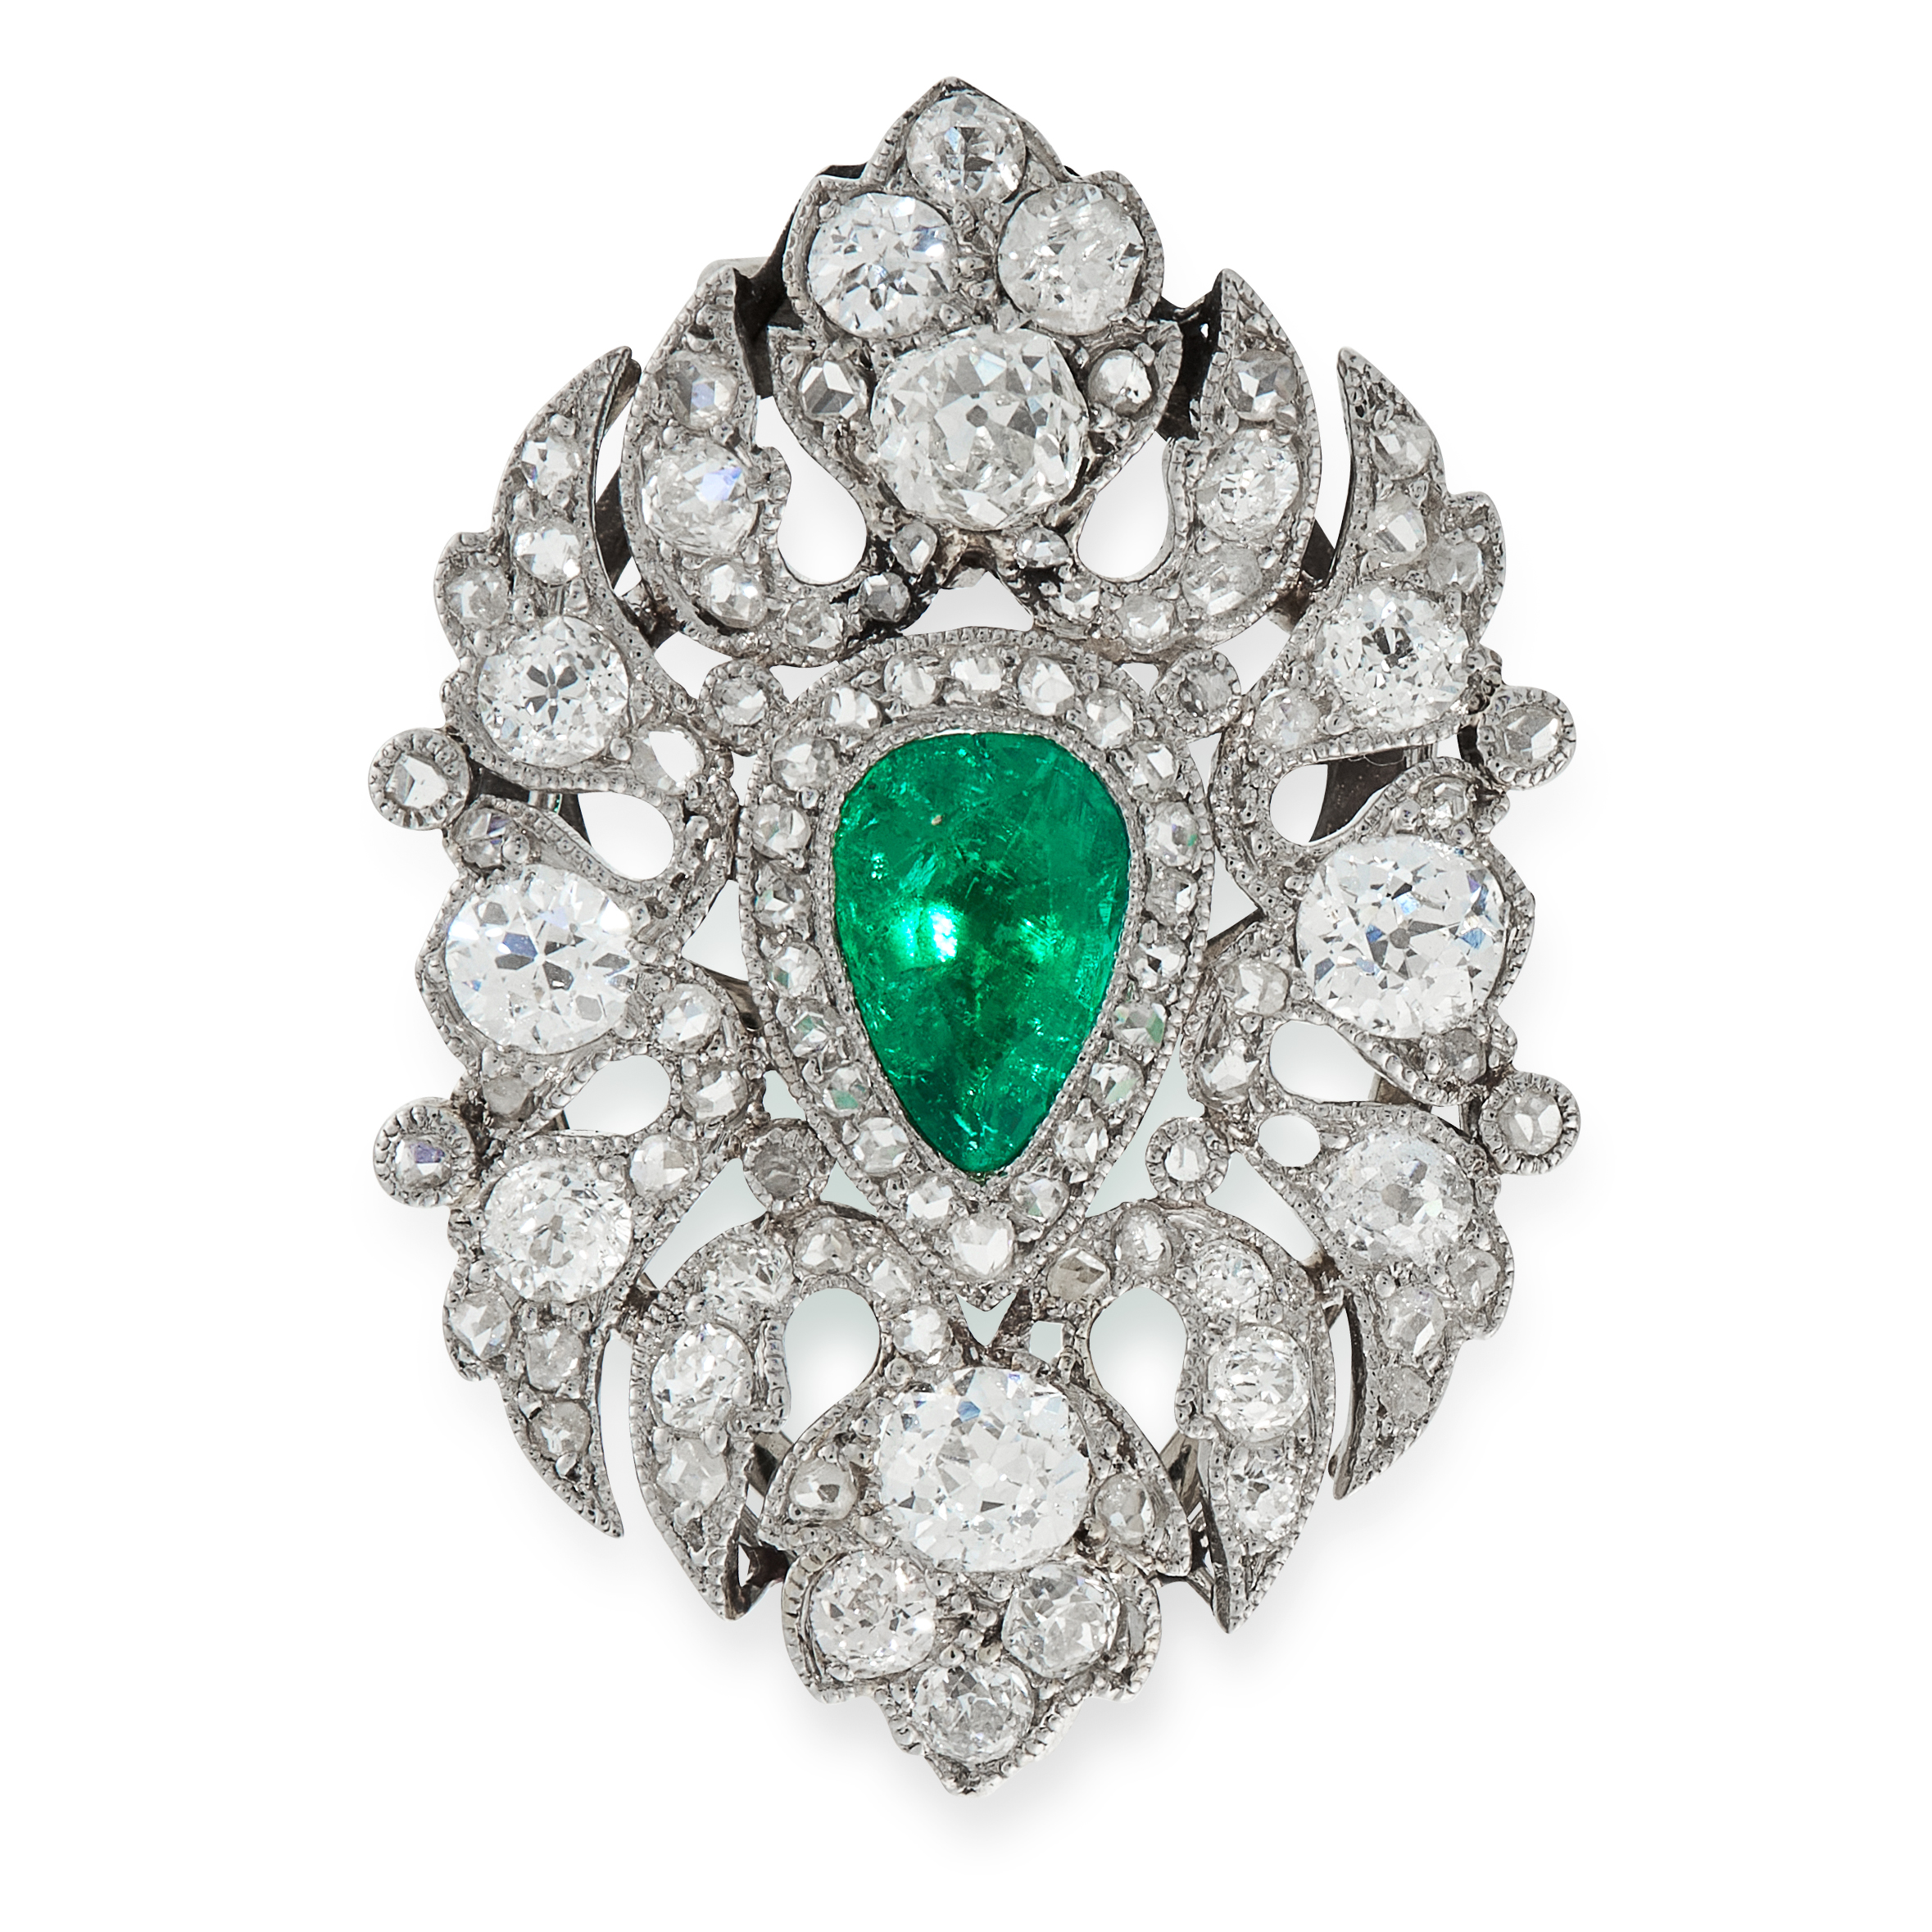 AN EMERALD AND DIAMOND CLIP BROOCH set with a central pear cut emerald of 0.83 carats in a foliate